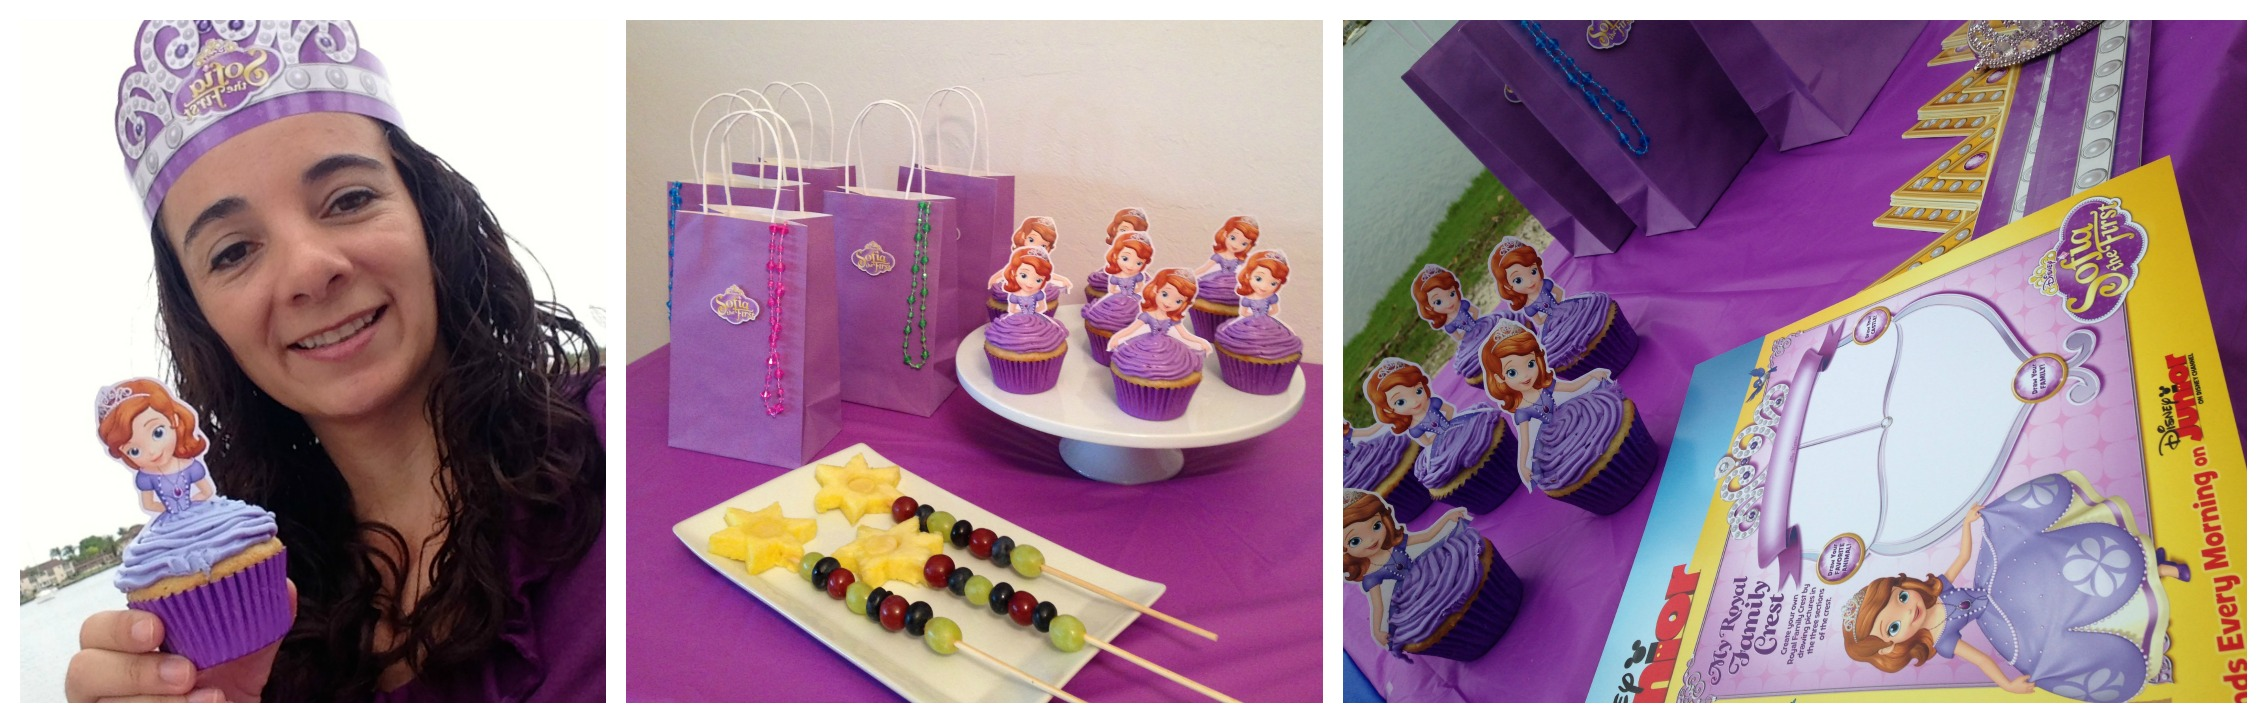 sofia the first princess party ideas Disney